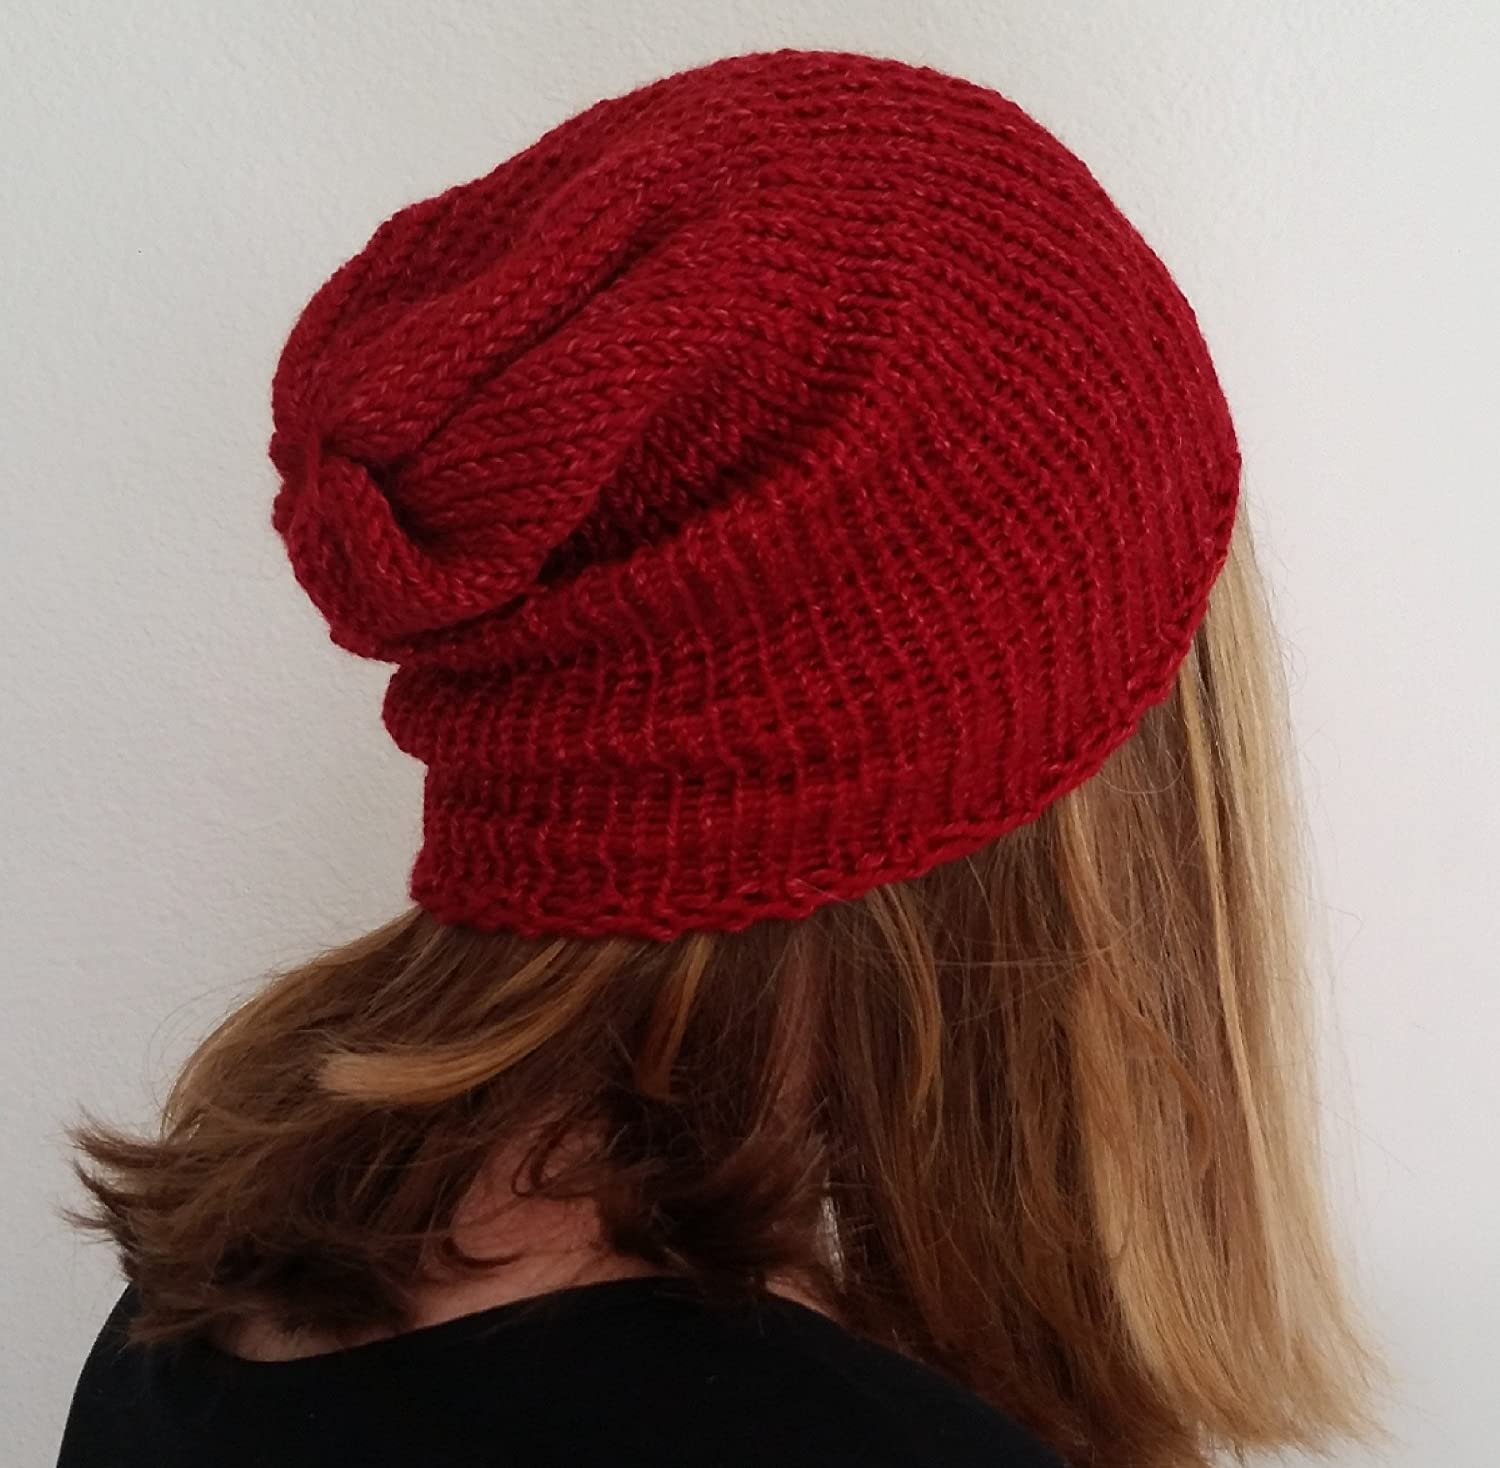 Lightweight Red Ribbed Unisex Alpaca Slouchy Beanie Hat